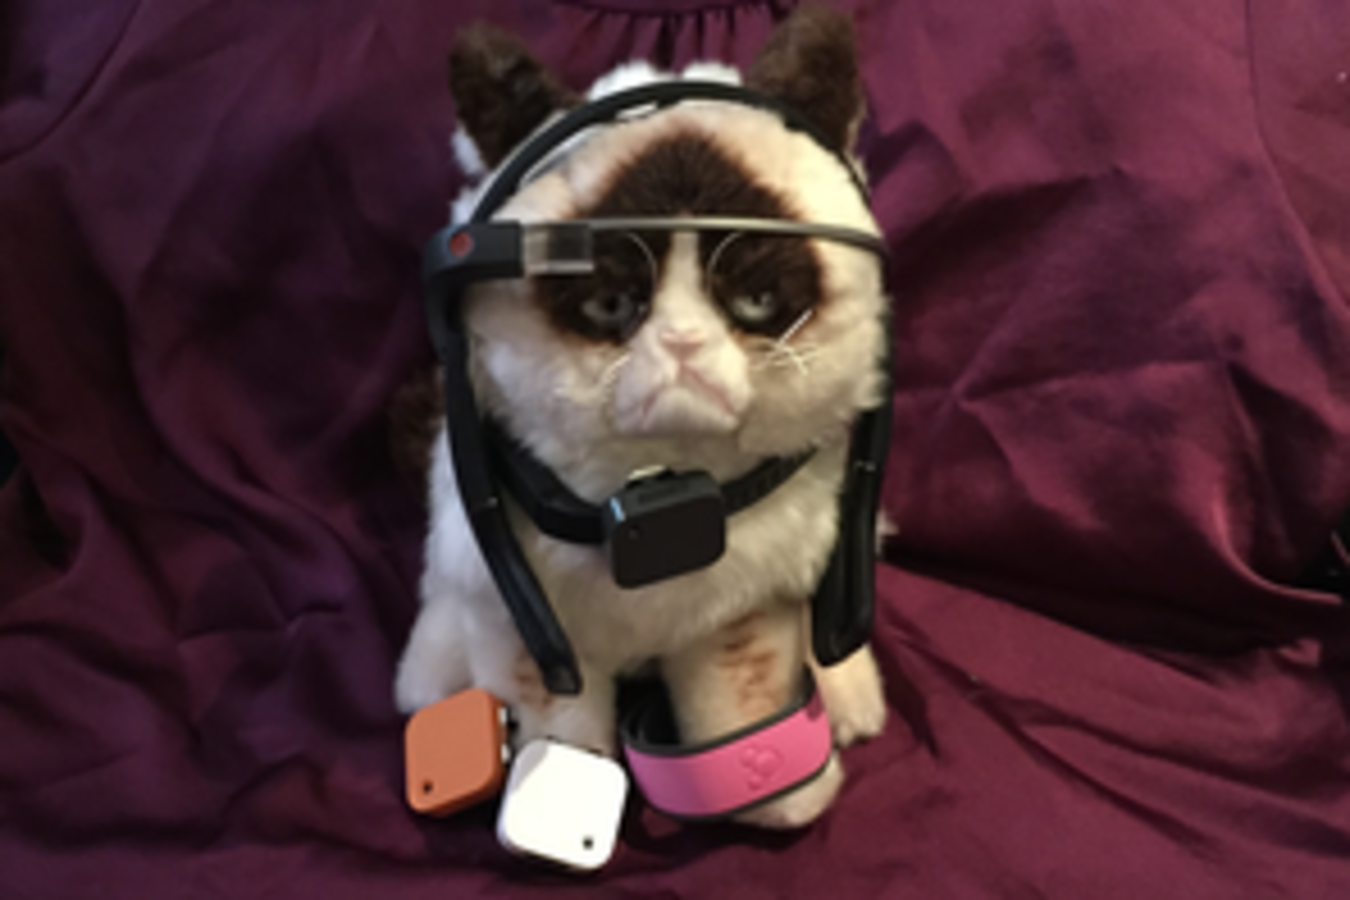 Wearable Technology - SXSW Grumpy Cat